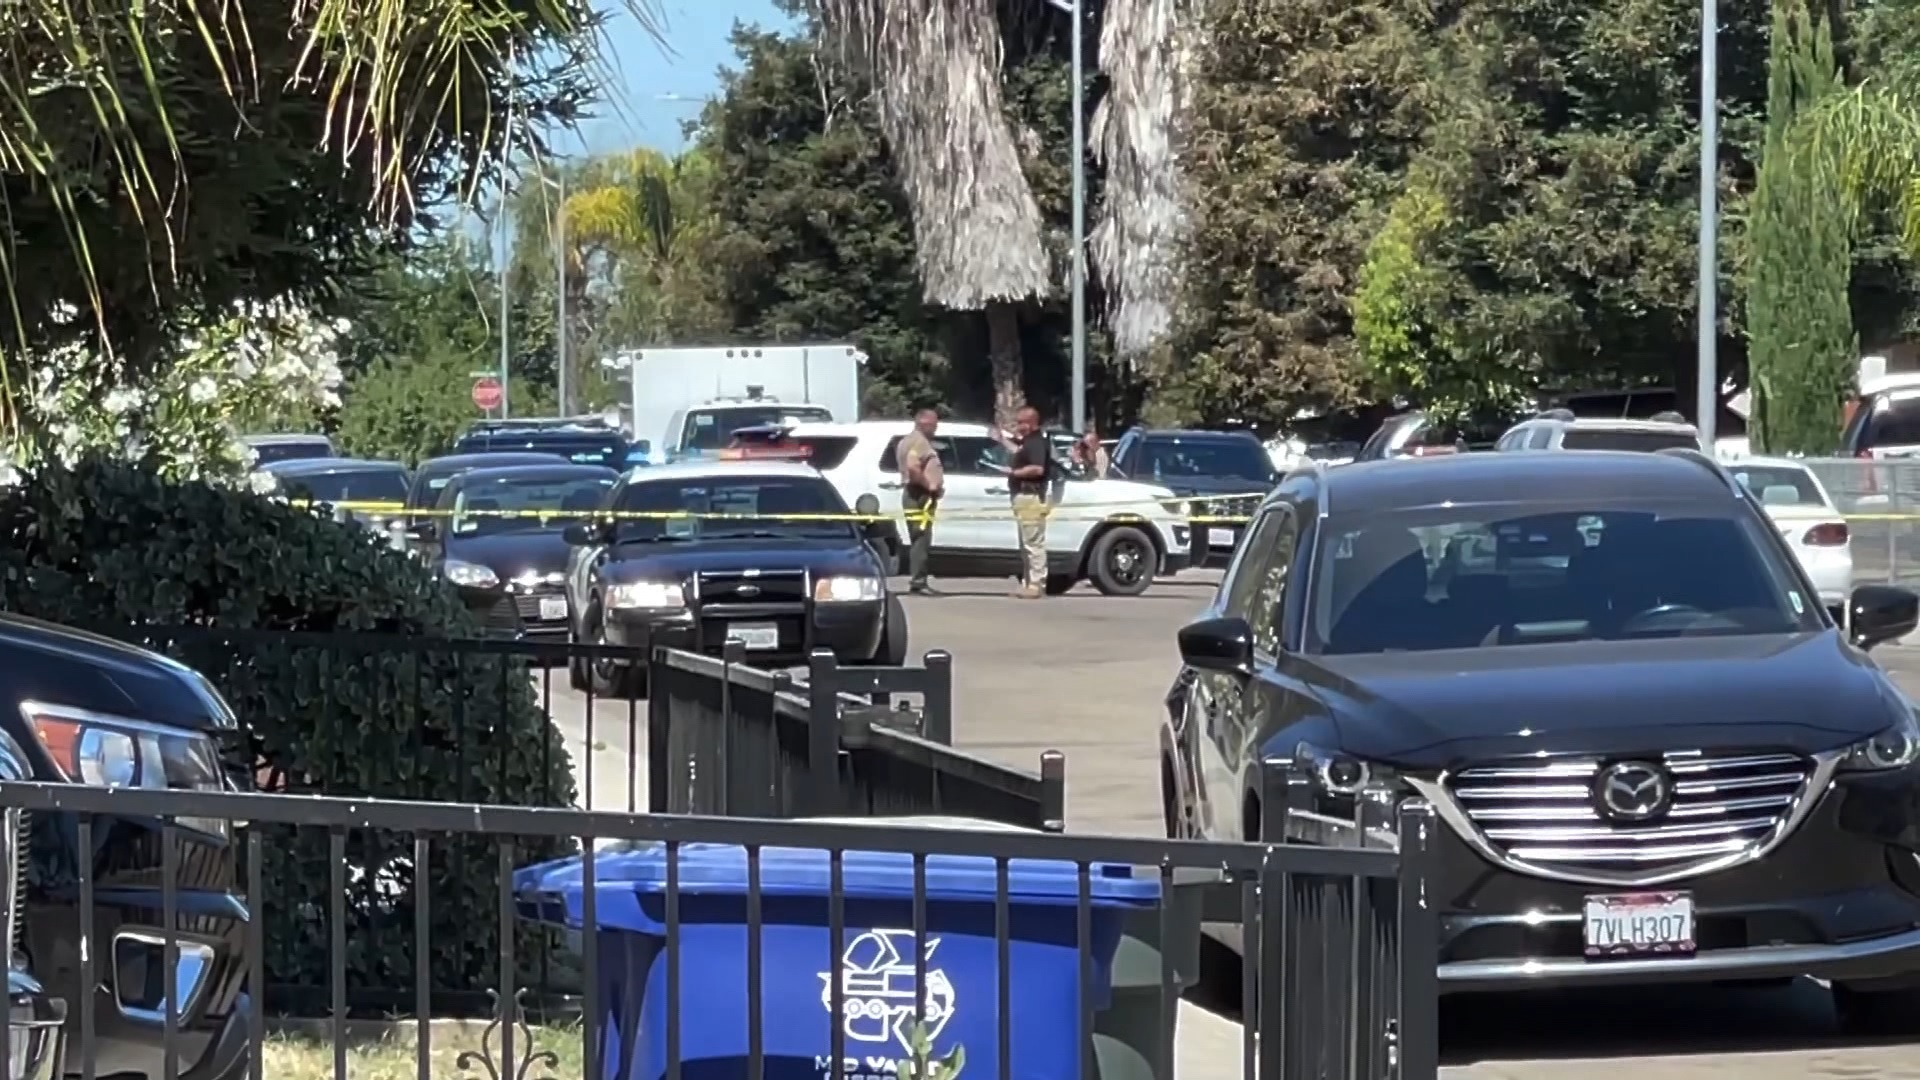 Victim identified in first of two fatal shootings in Parlier within 24 hours